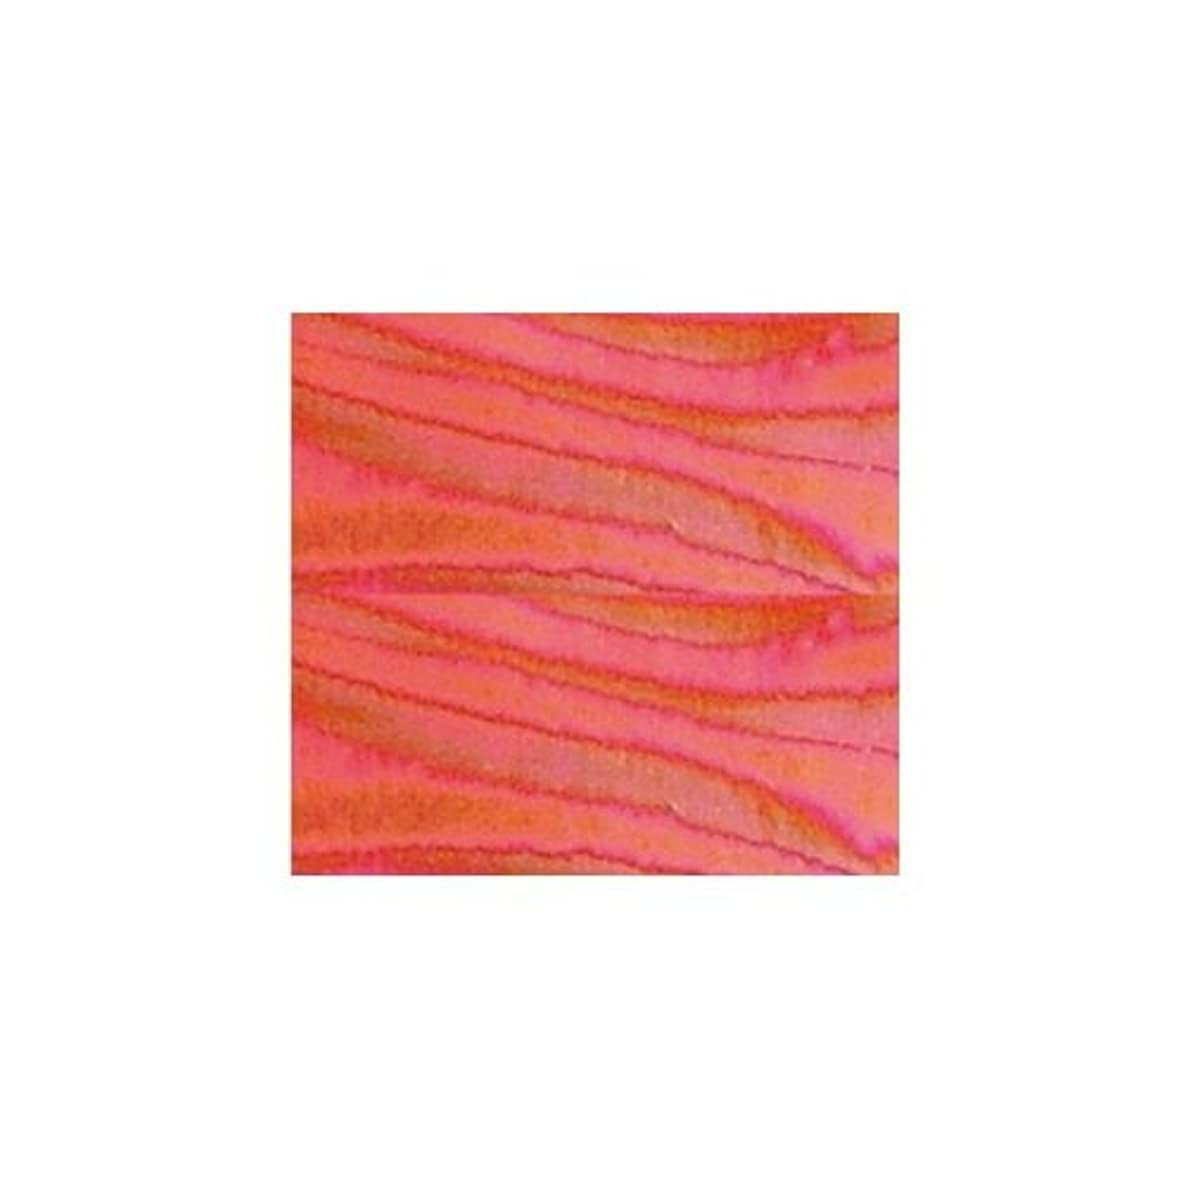 RAYHER 3111319?Wax Foil Moire Red Wine 20?x 10?cm 1?Piece